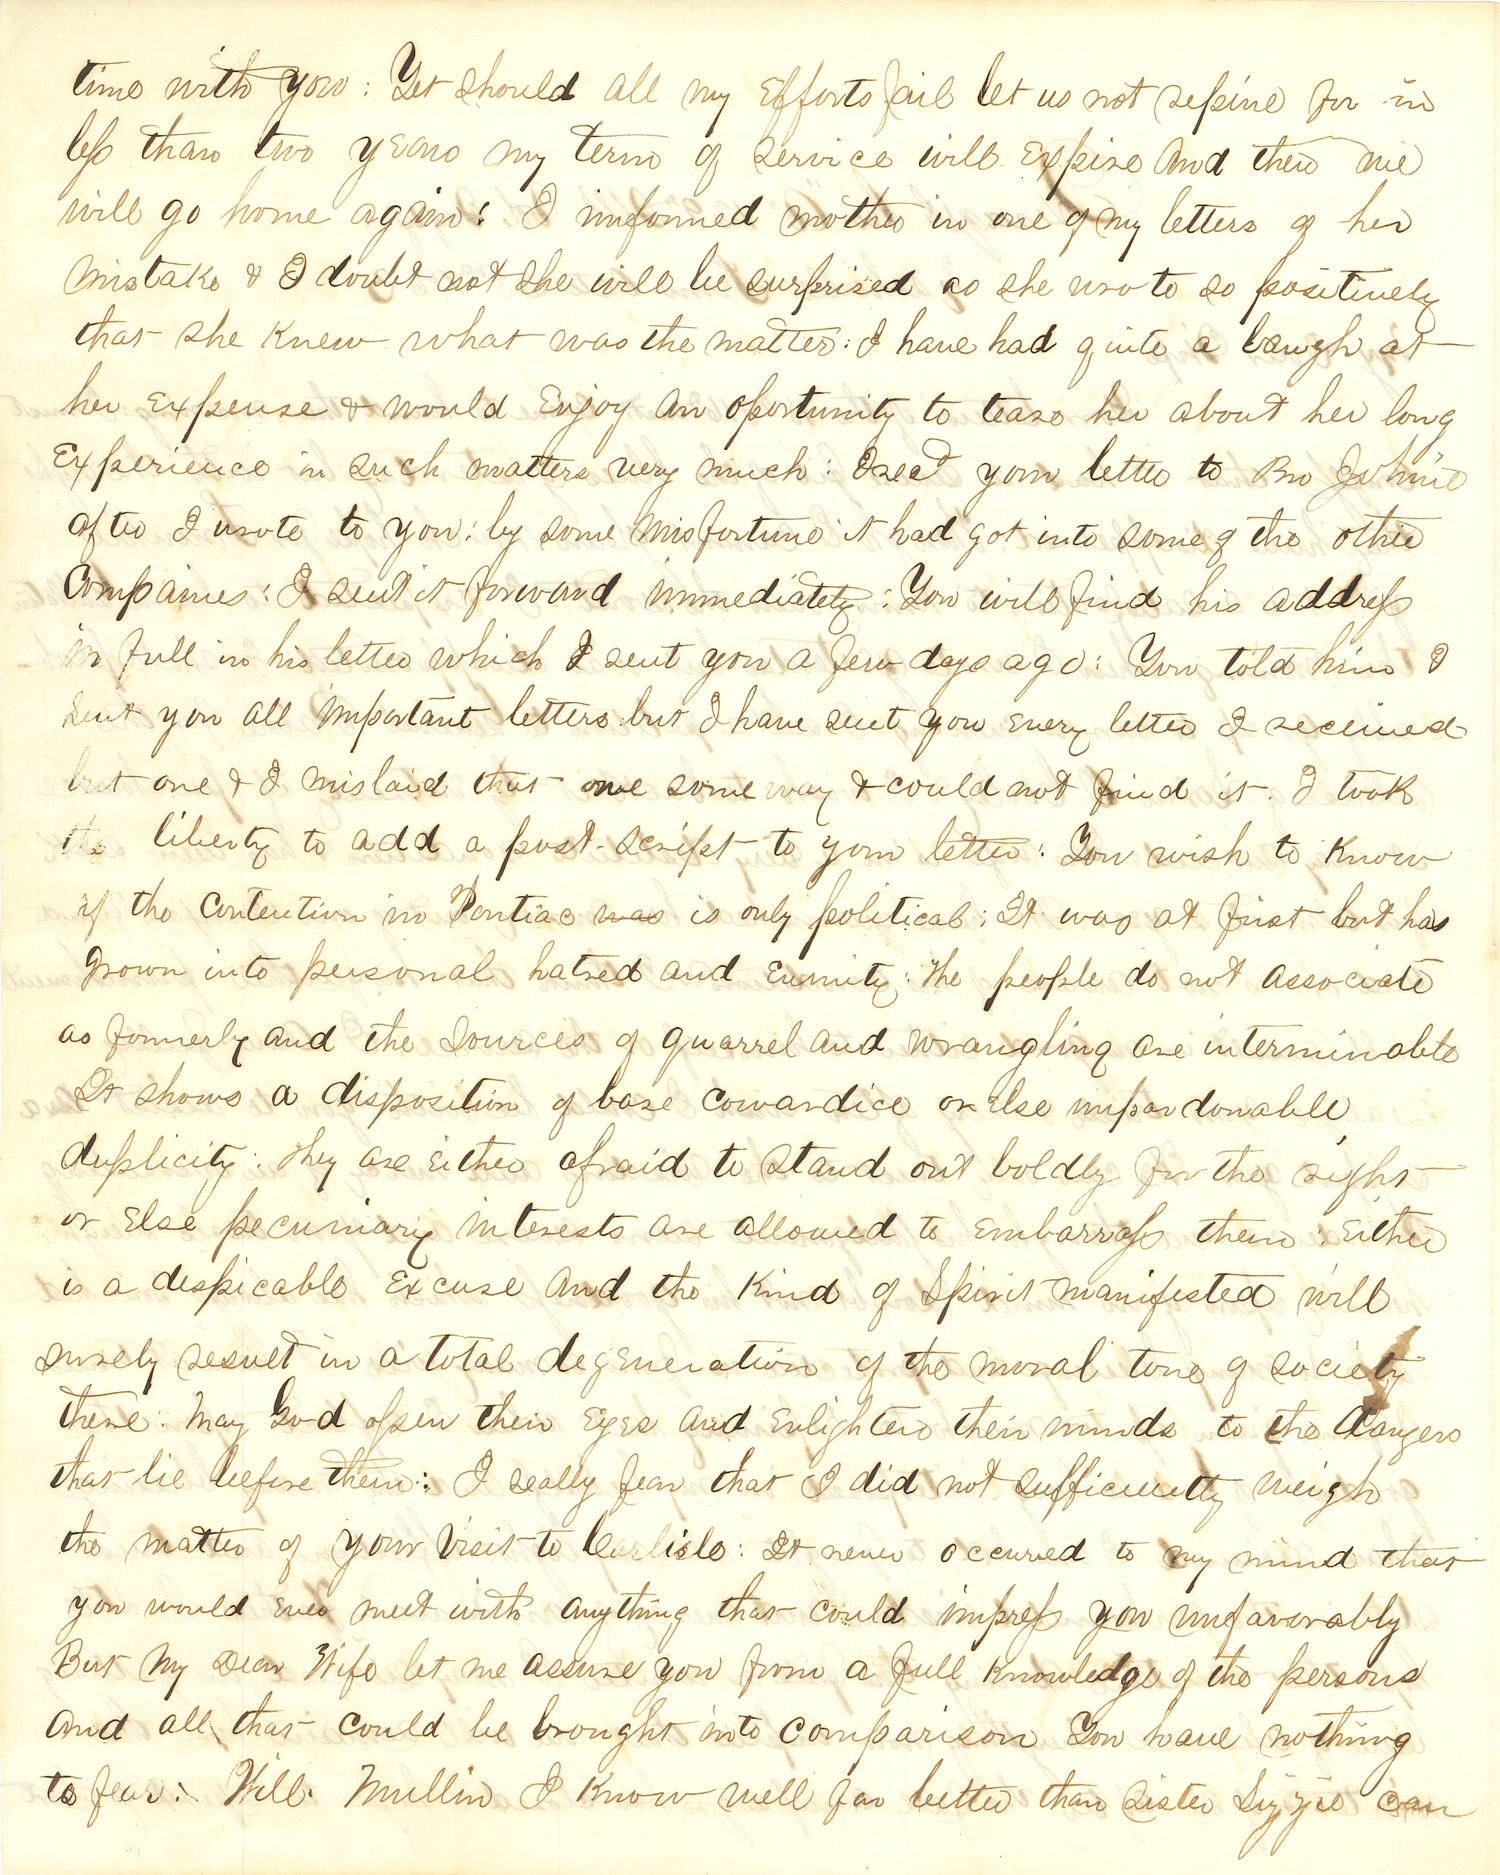 Joseph Culver Letter, October 23, 1863, Page 2